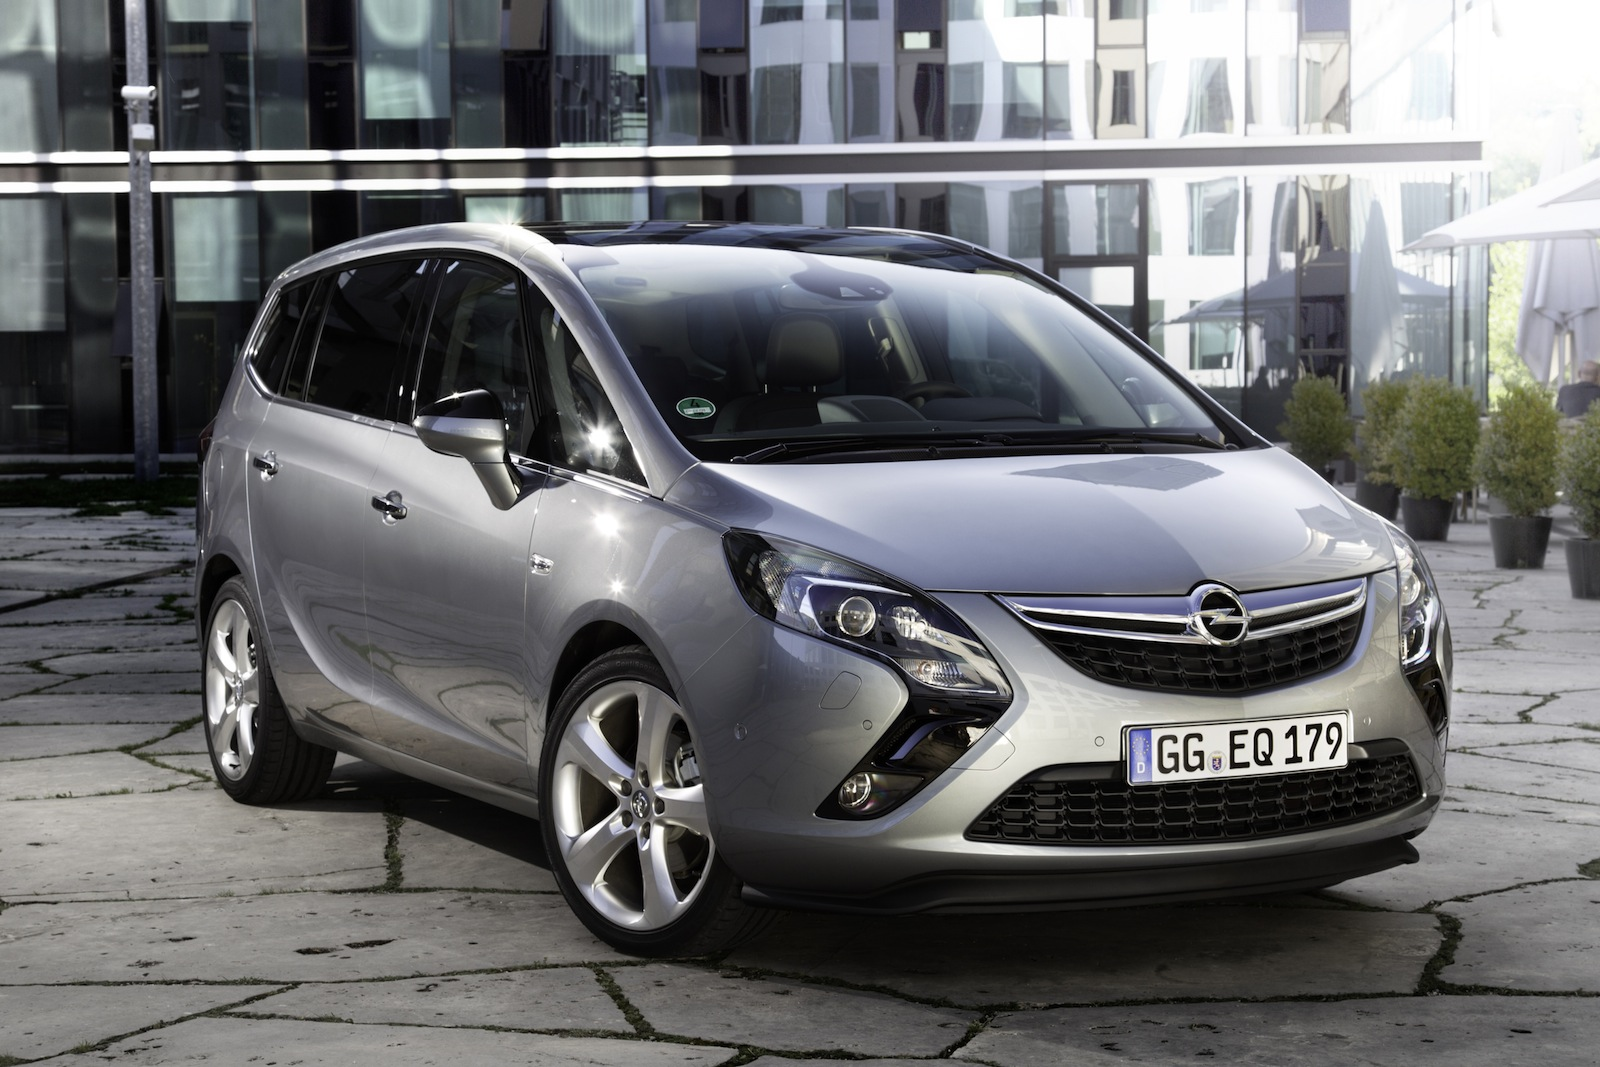 2017 opel zafira facelift unveiled photos 1 of 8